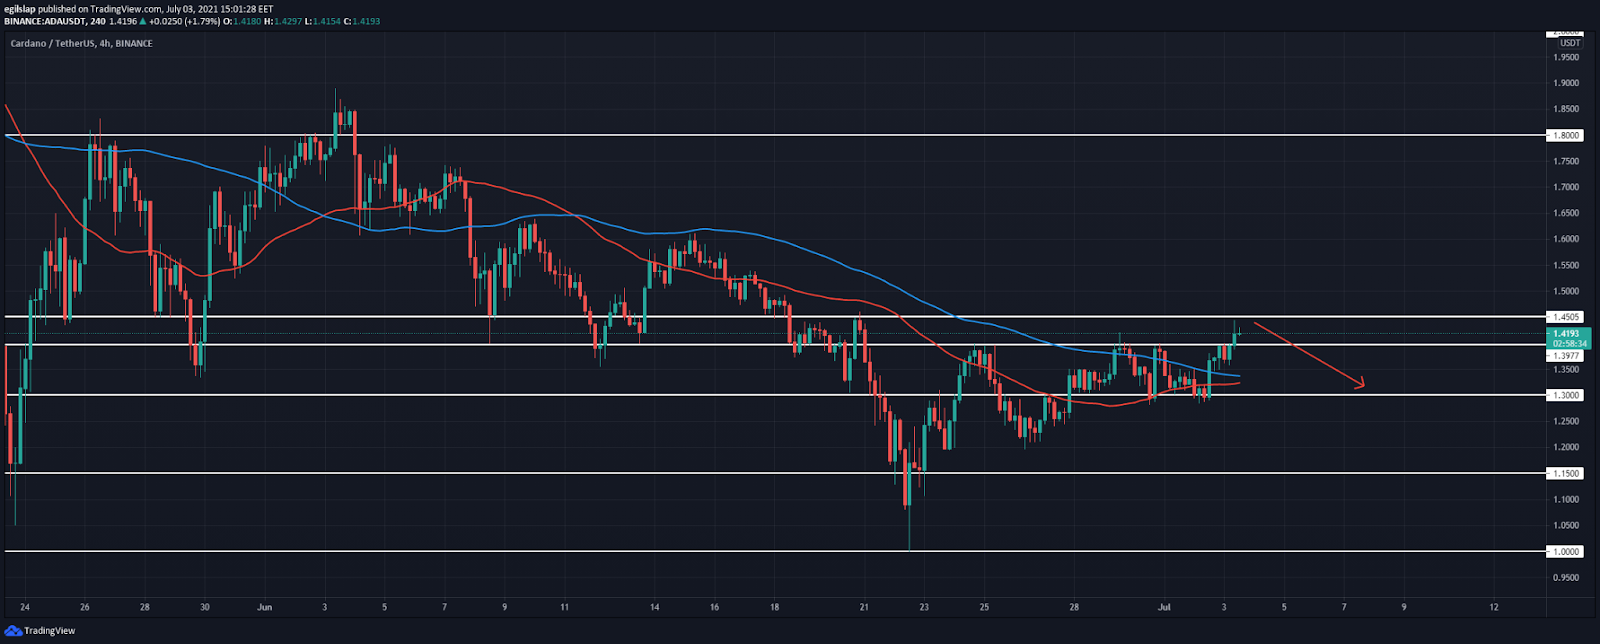 Cardano price analysis: ADA spikes to $1.45, ready for a retracement?